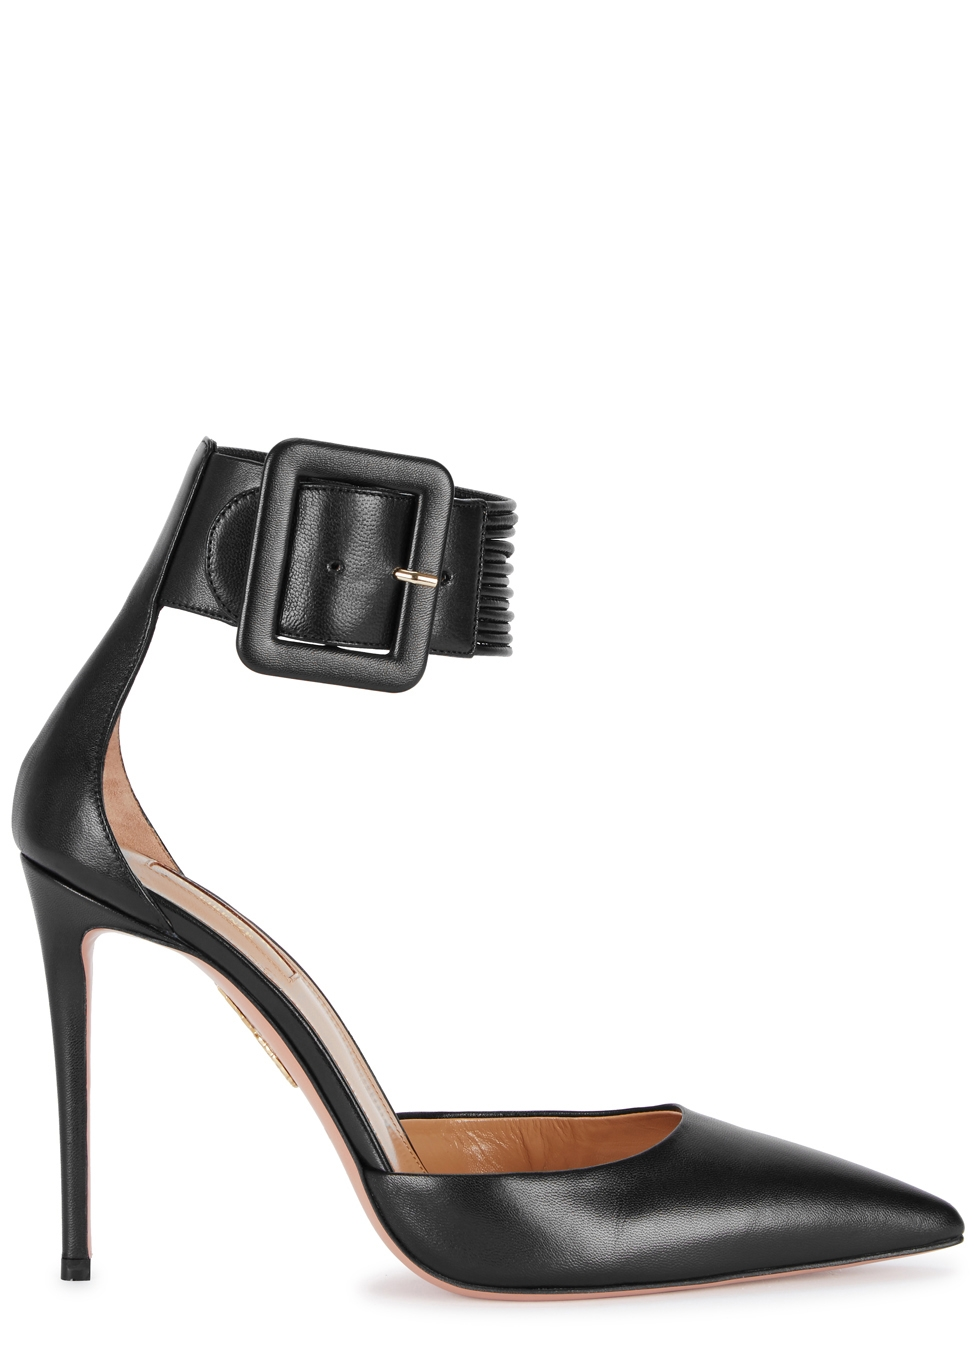 AQUAZZURA CASABLANCA BLACK LEATHER PUMPS